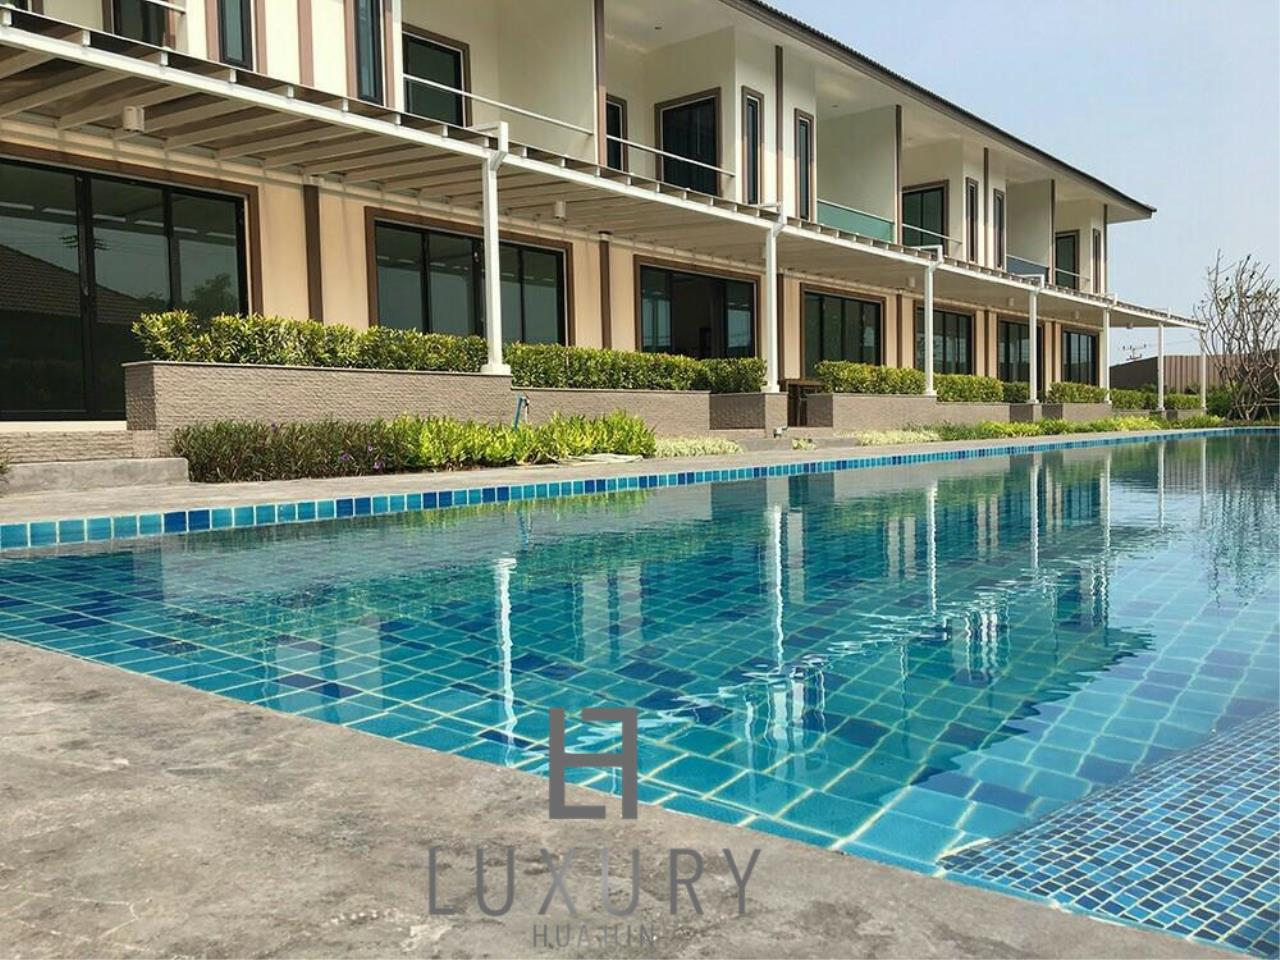 Luxury Hua Hin Property Agency's New Development - New Townhouses close to Hua Hin town centre 1